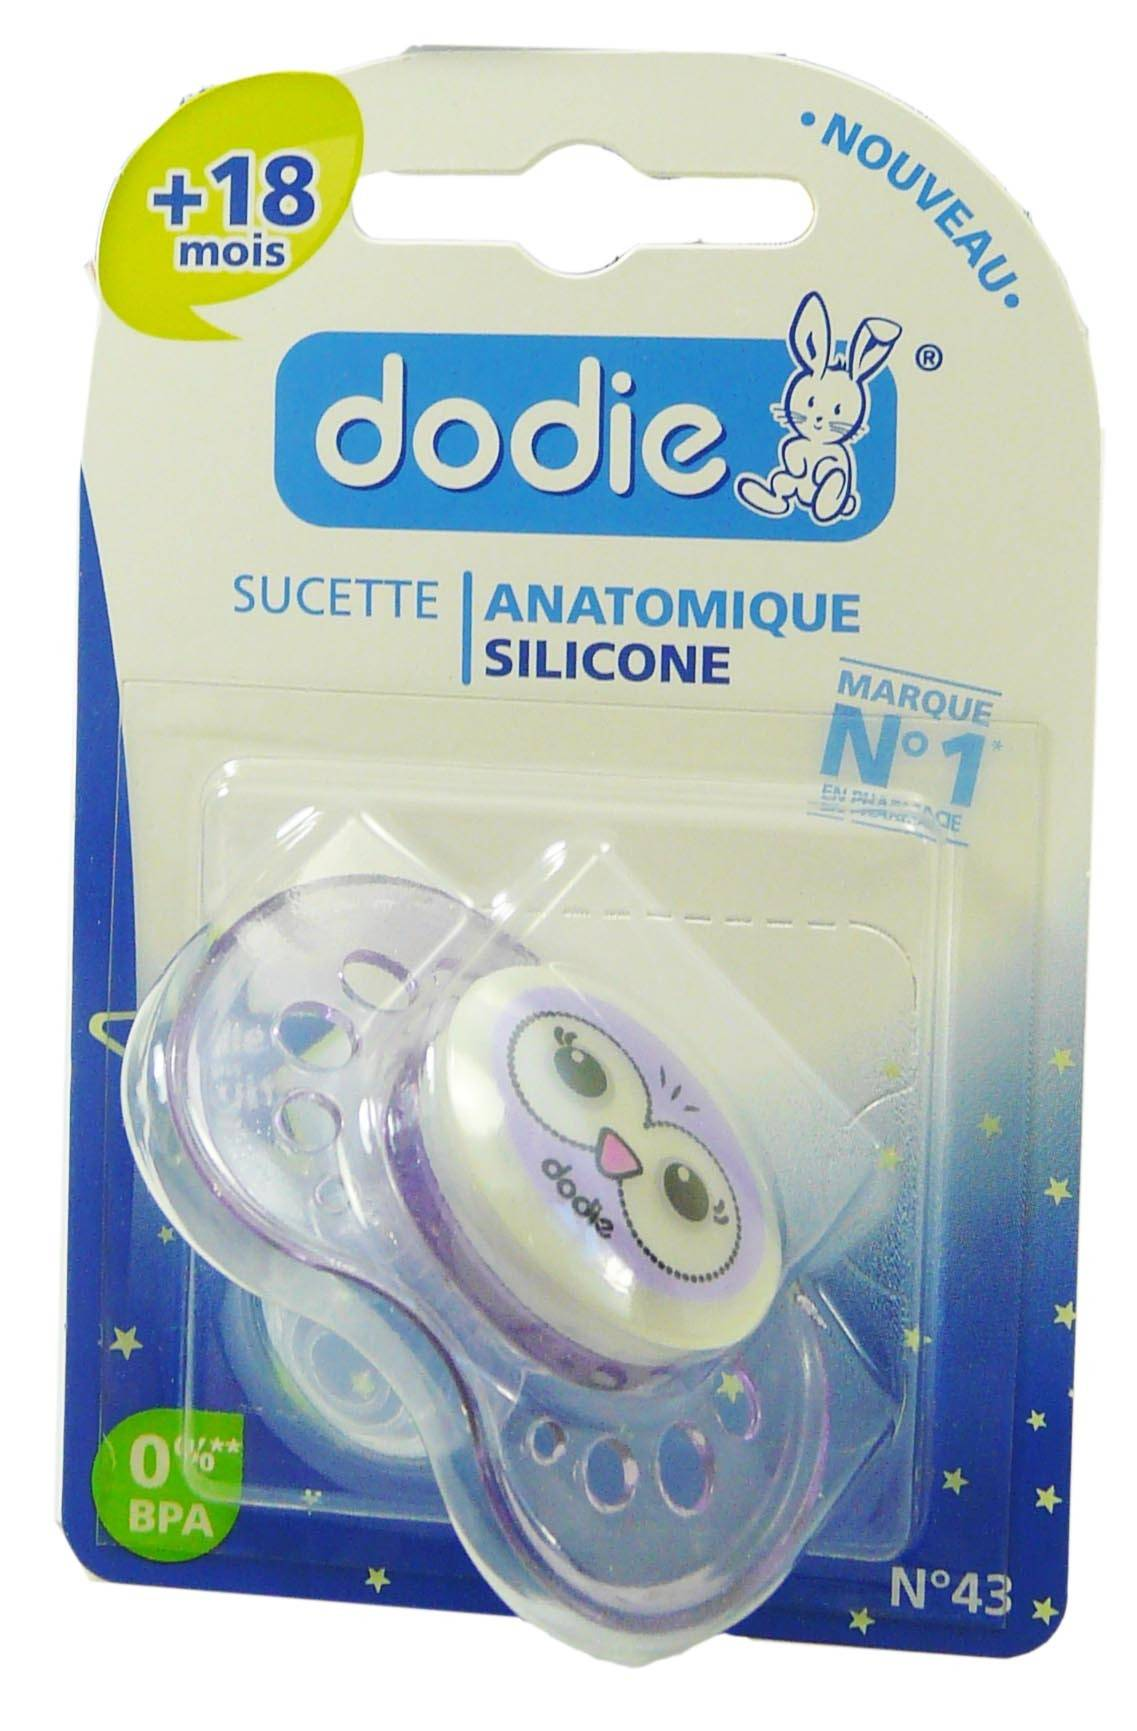 Dodie sucette anatomique silicone +18 mois n°43